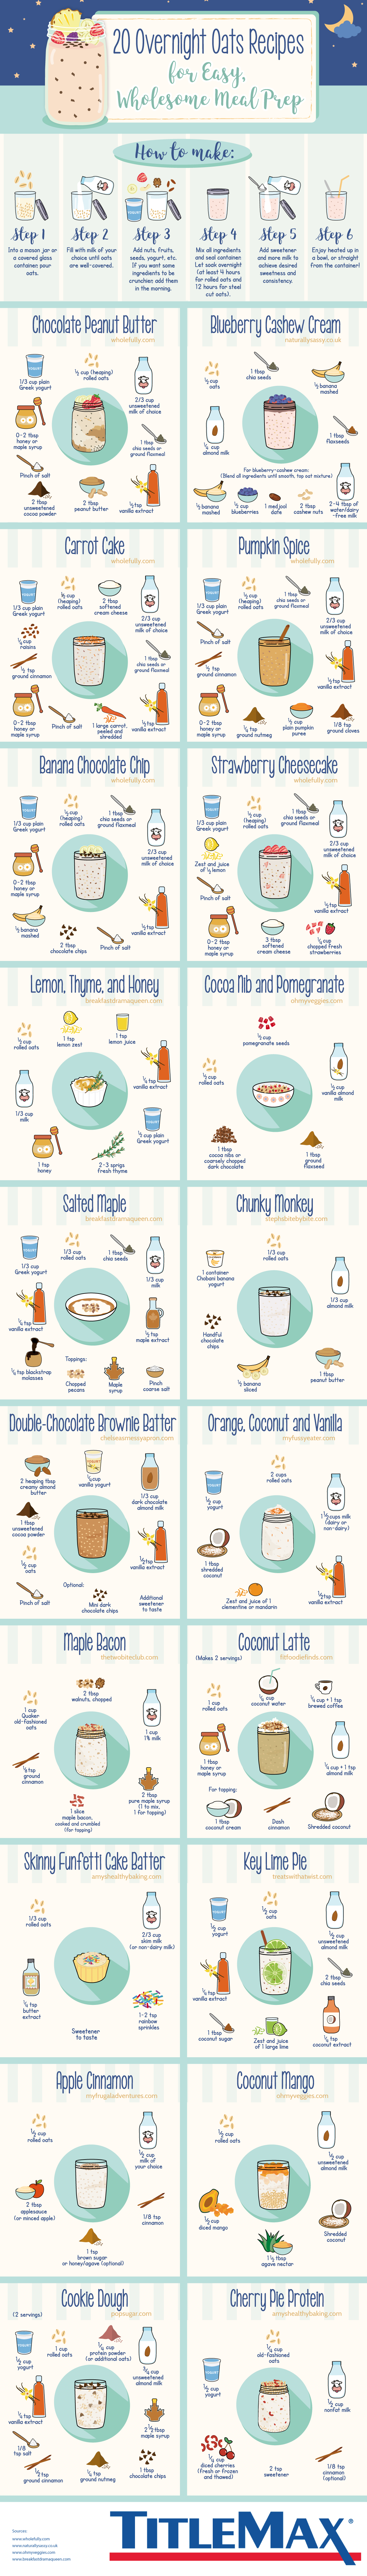 20 Oats-Recipes for Happy and Healthy Breakfasts! - Infographic